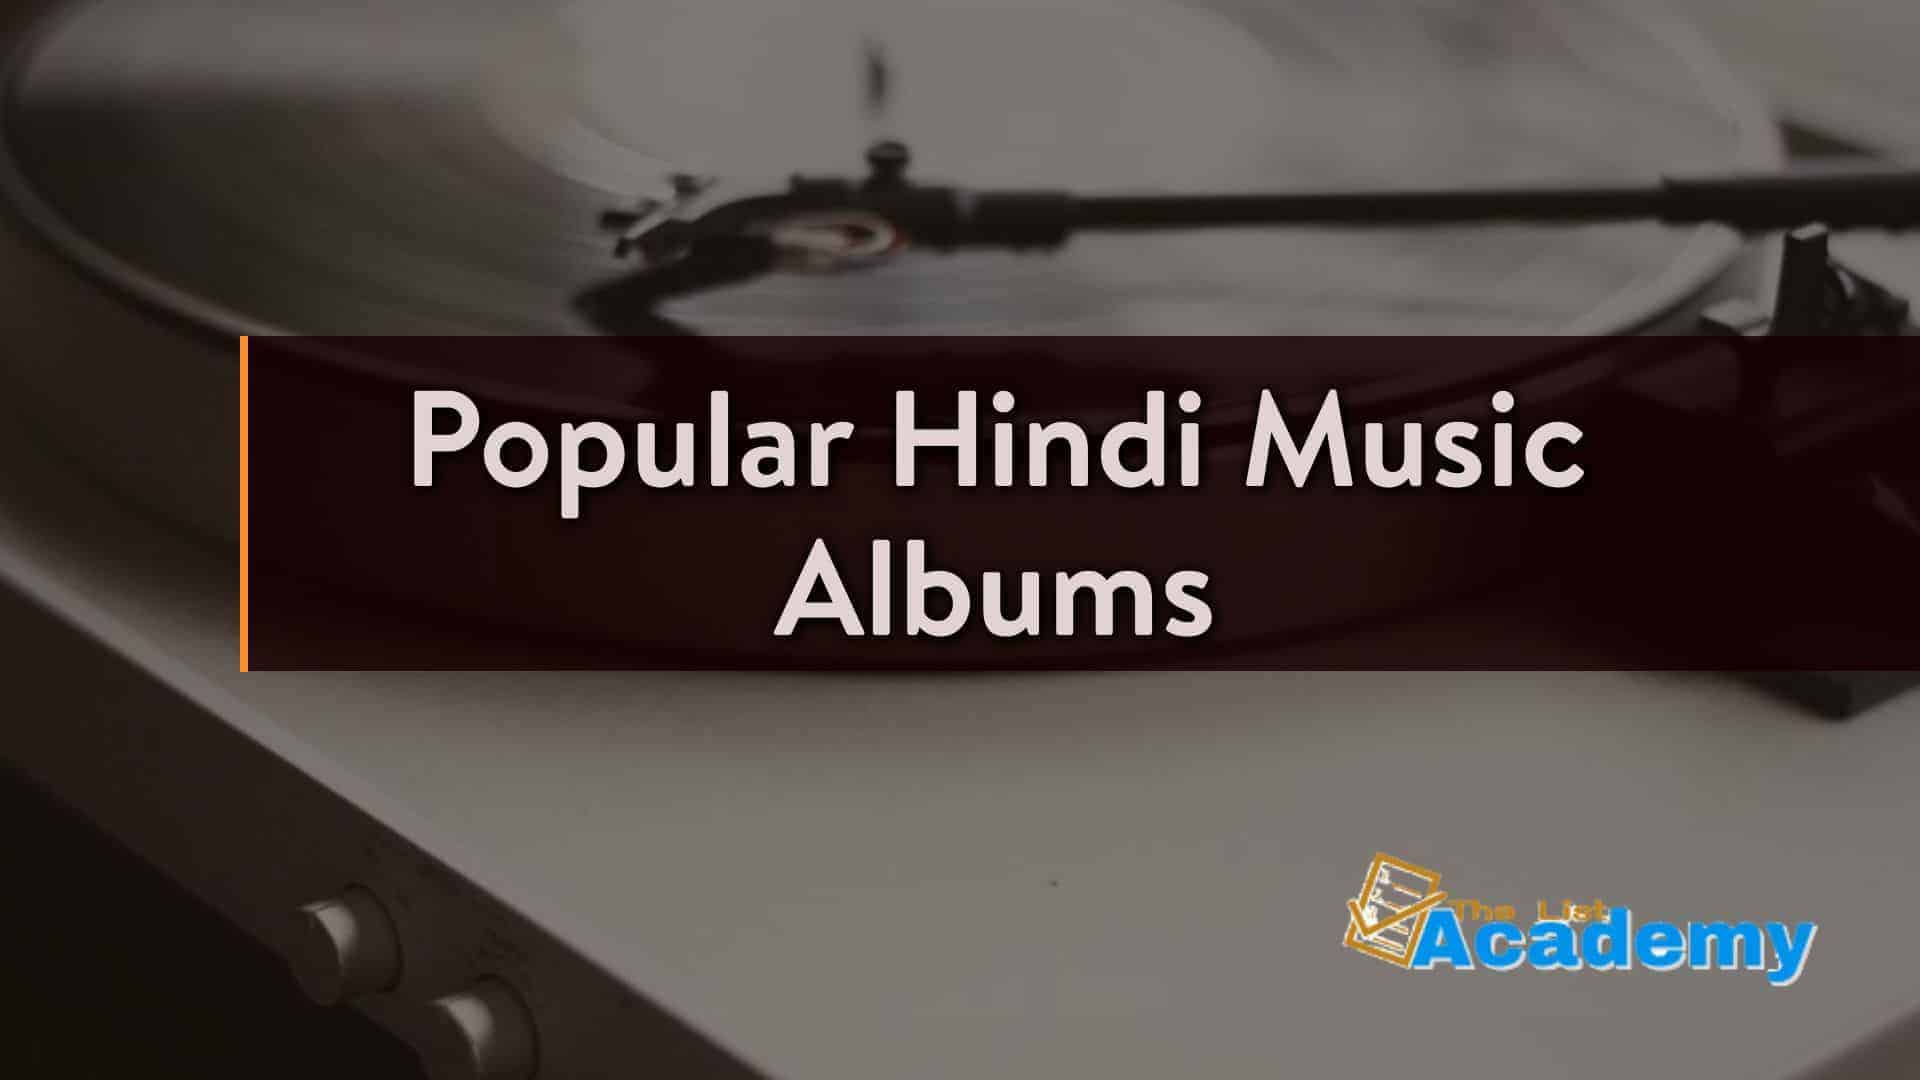 Cover Image For List : 10 Most Popular Hindi Music Albums